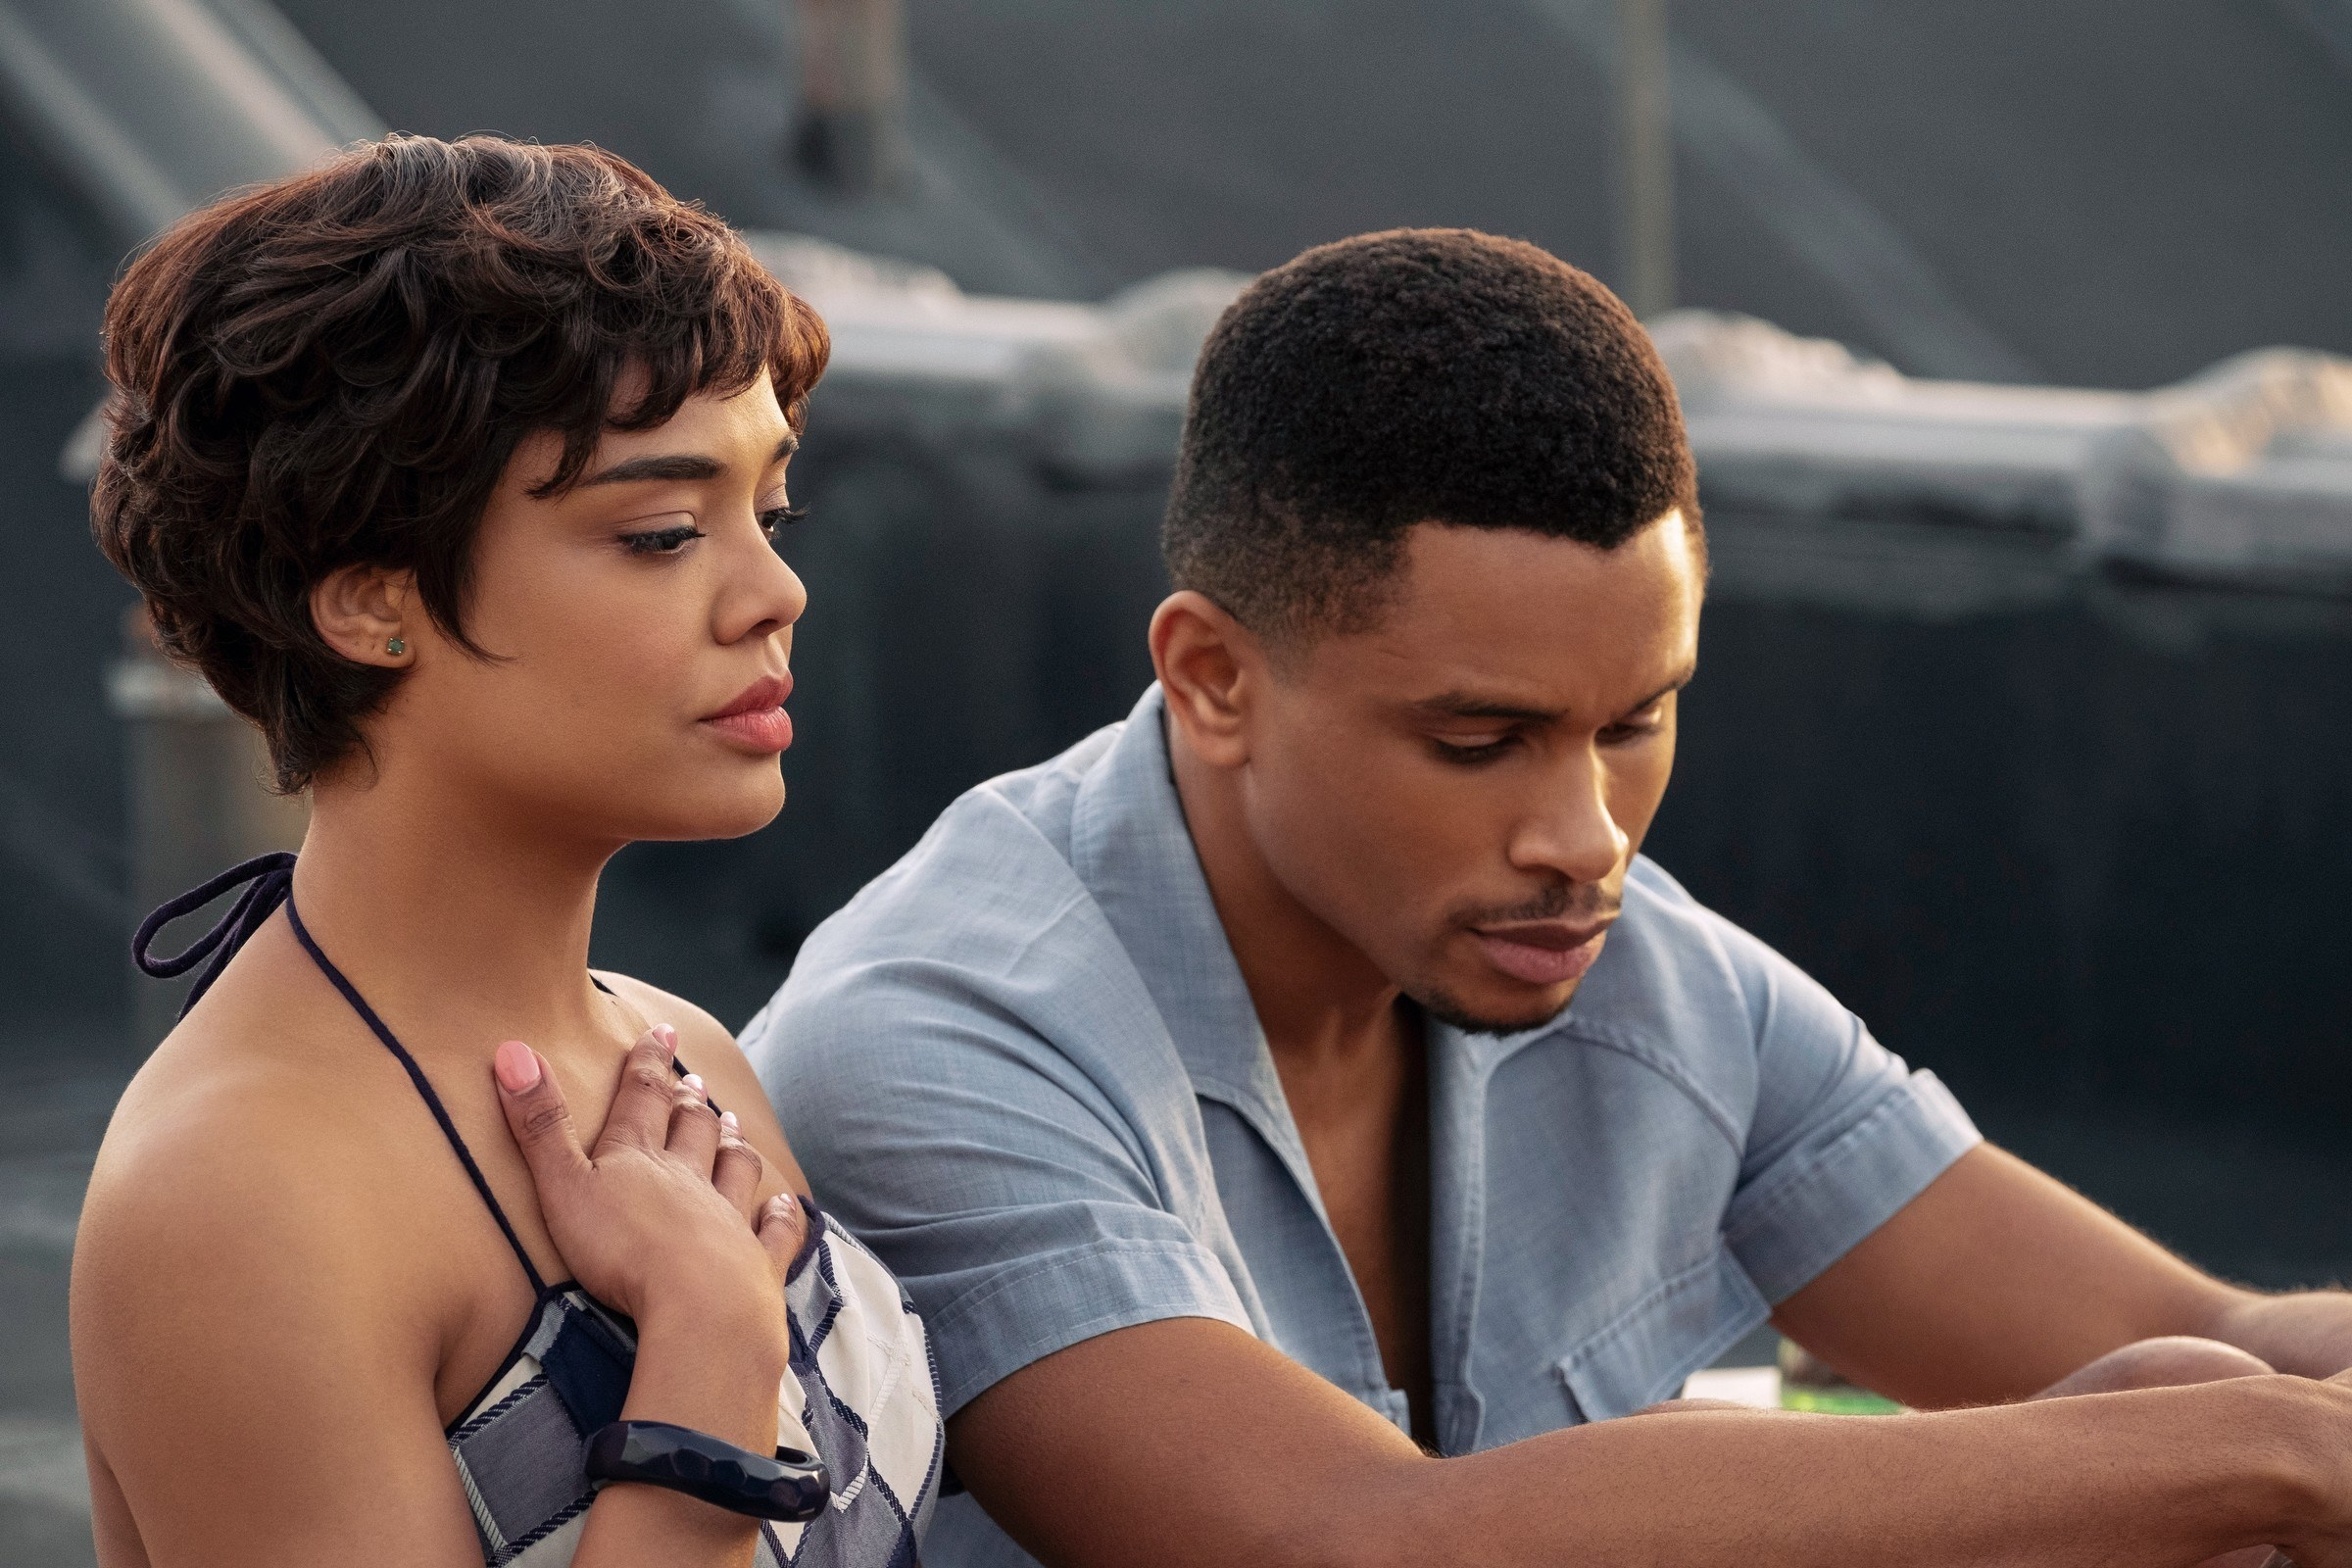 still image from the movie sylvie's love with tessa thompson and nnamdi asomugha. they are both sitting down talking while tessa has her hand on her chest